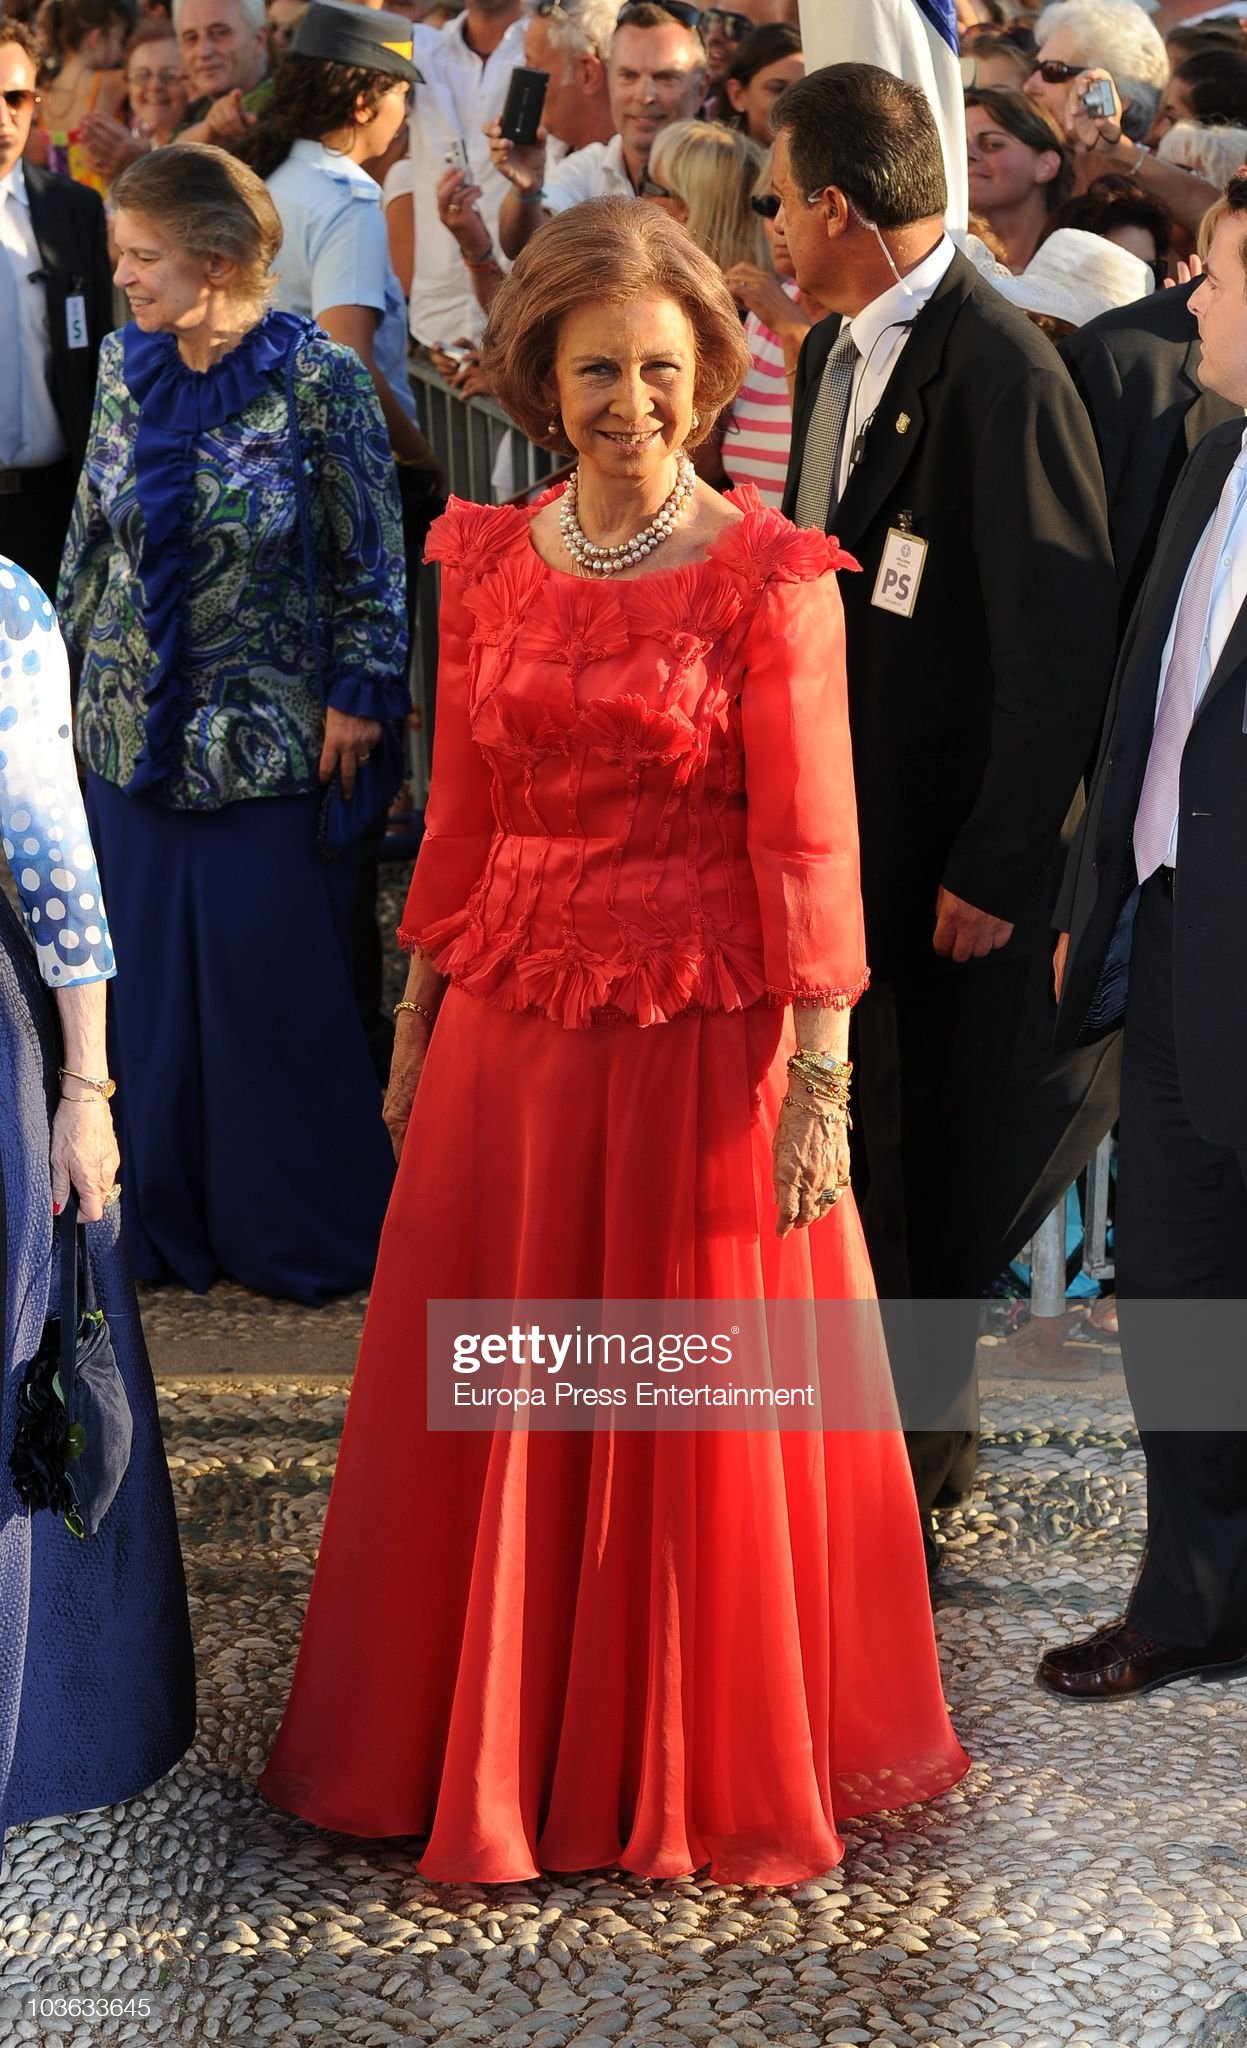 Wedding of Prince Nikolaos and Tatiana Blatnik - Arrivals : News Photo